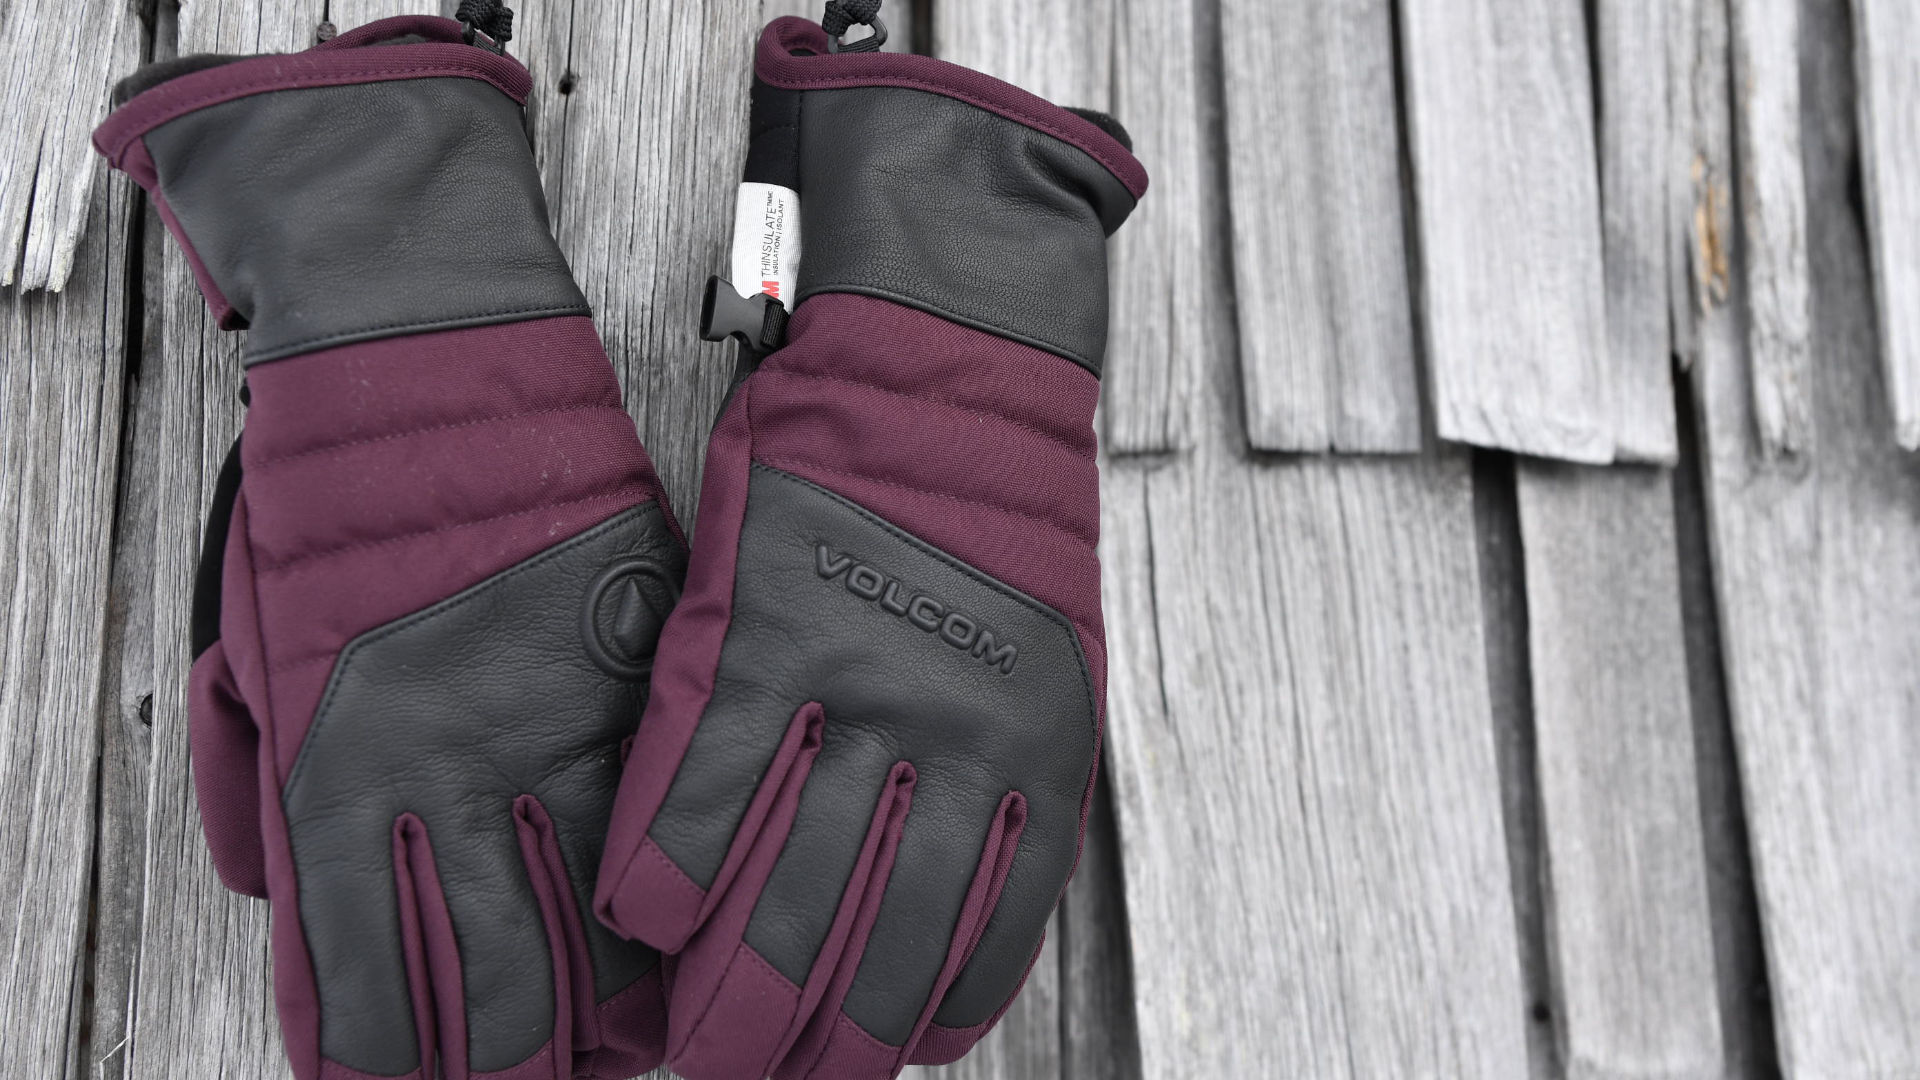 a pair of Volcom gloves on wooden plates